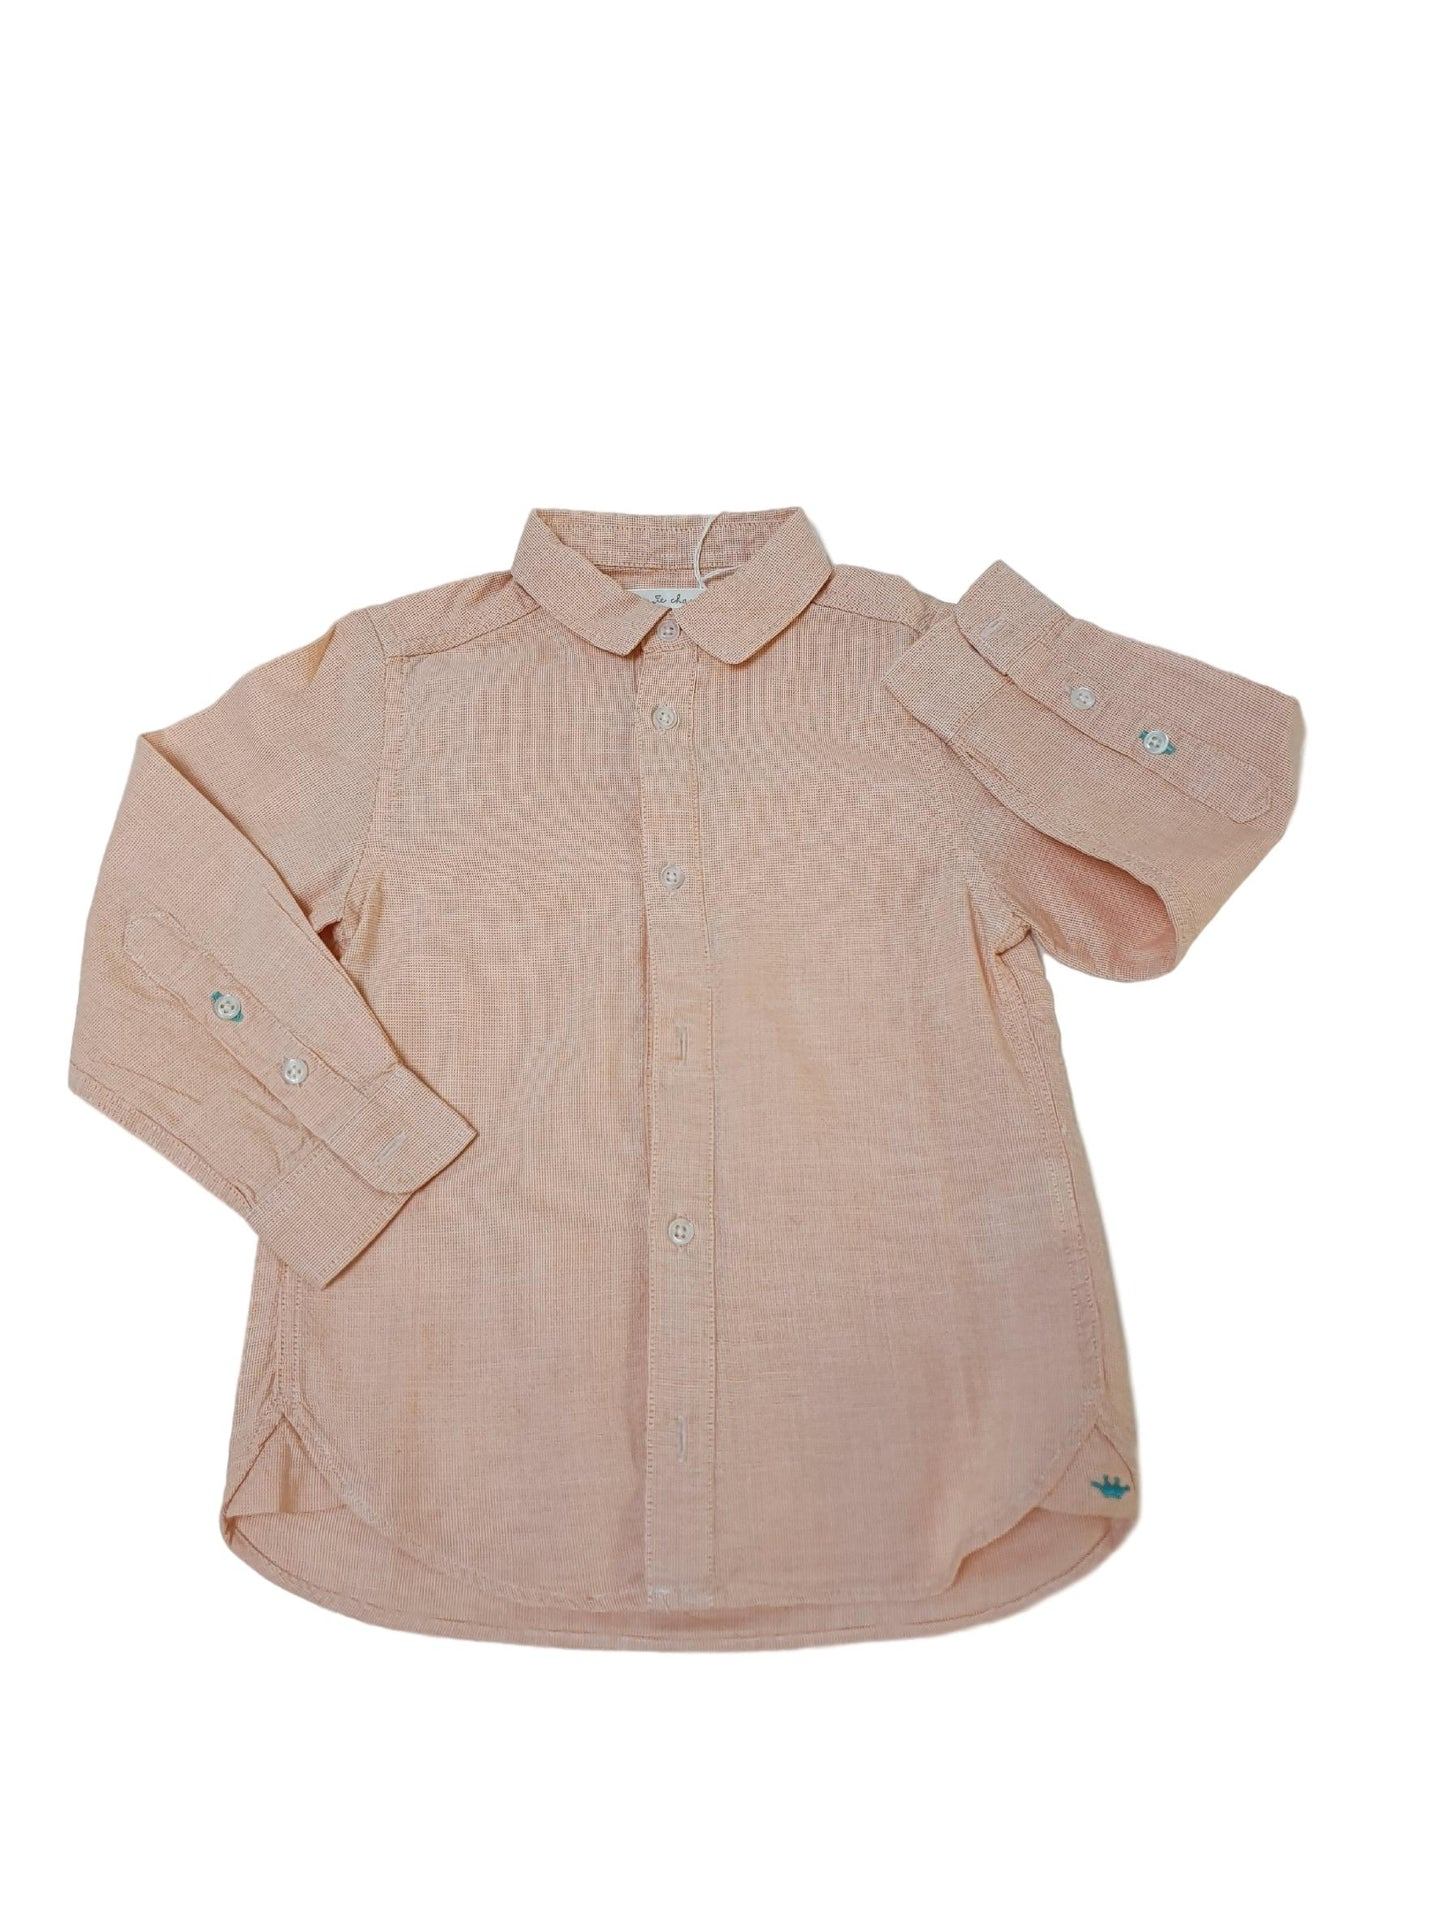 MARIE CHANTAL boy shirt 3yo